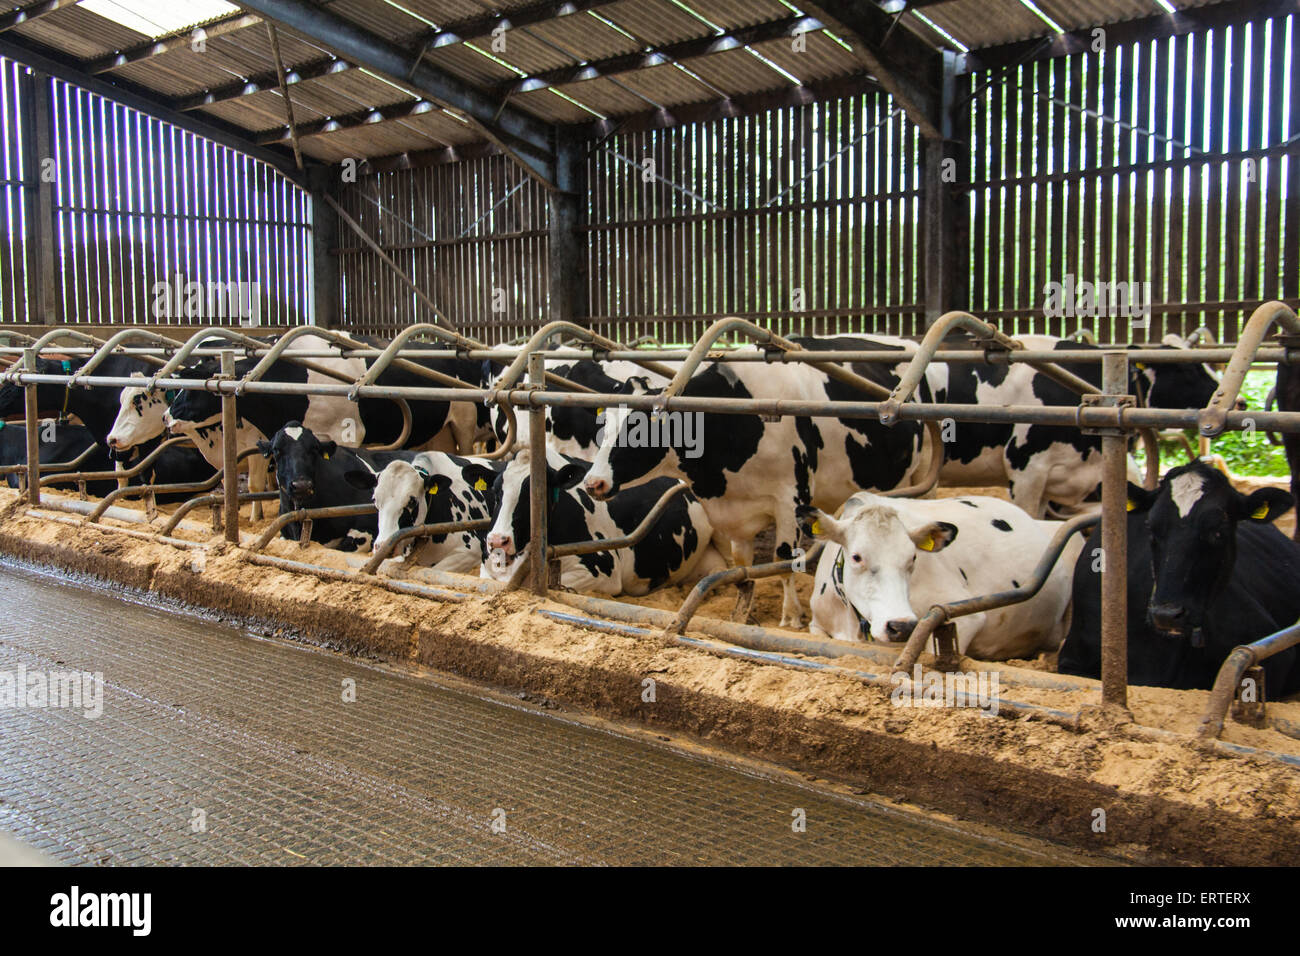 advantages of management intensive grazing dairy farms and the imitation of csa Mississippi state university extension has a publication on the economic benefits of rotational grazing southwest farm press has an article about improved efficiency from rotational grazing case's agworld has links to information about rotational grazing (and much more) grazing studies: what we've learned, was published in april 1999 by jl holechek, h gomez, f molinar, and d galt it offers a synopsis many studies on grazing.